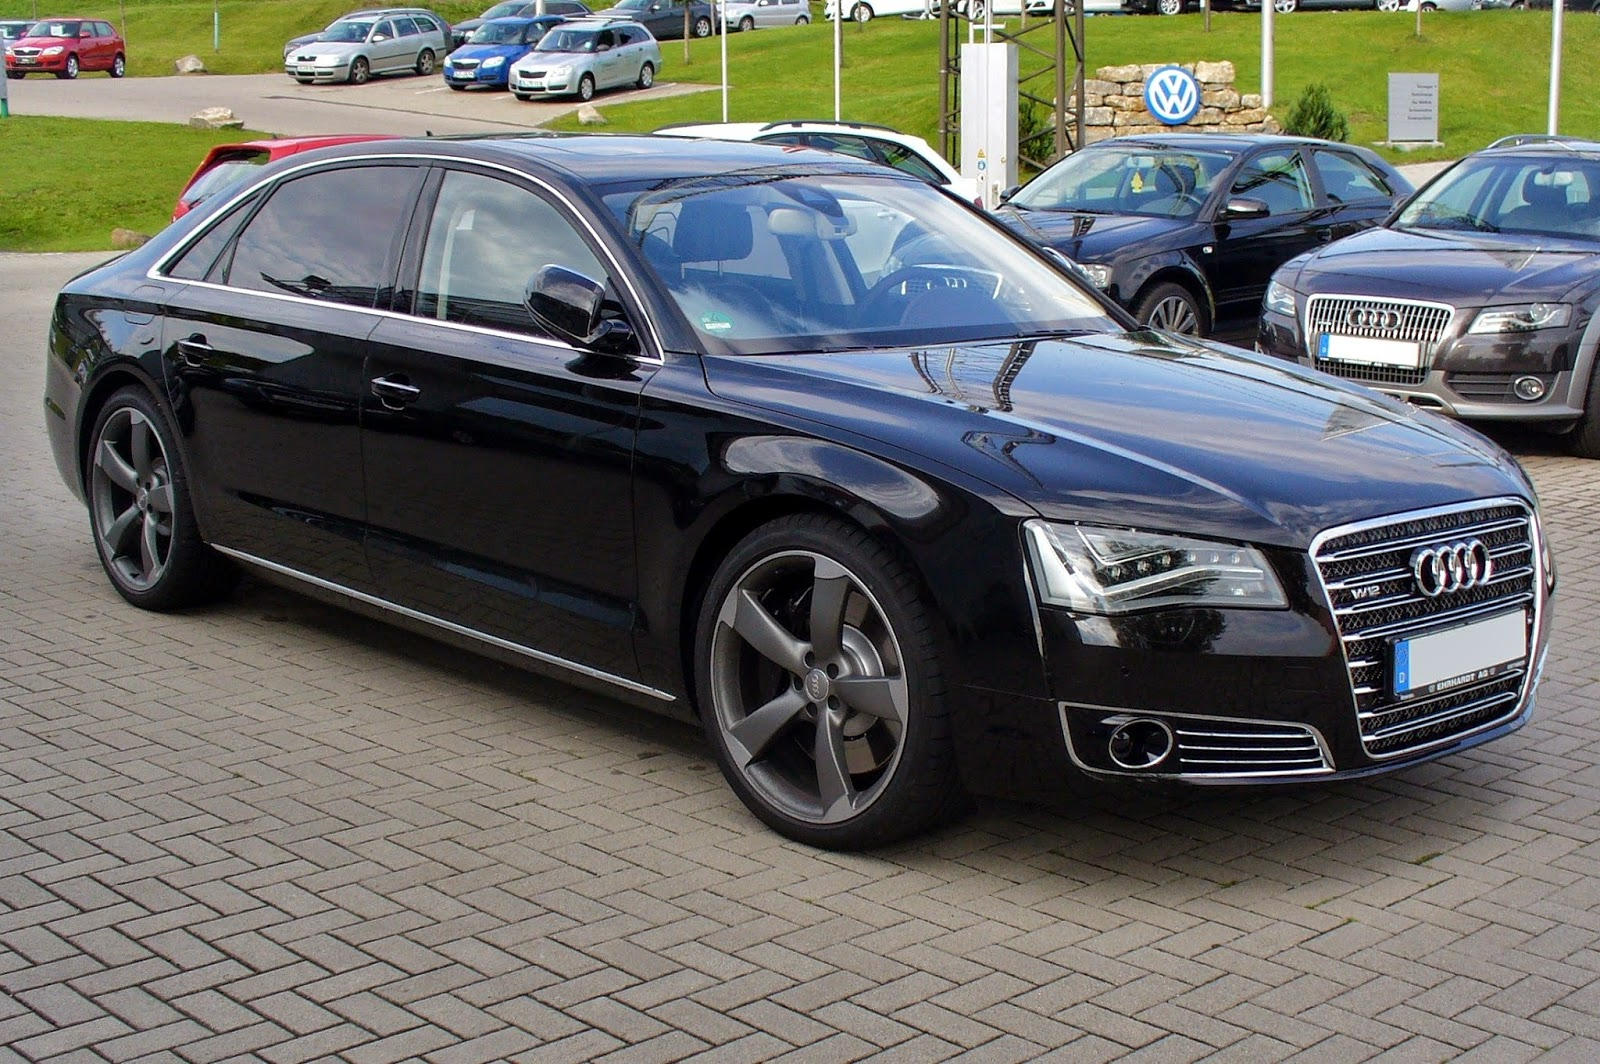 Audi S8 and A8 L W12 cars information : ~ New cars information Audi R W Hd on audi r8 lms, audi r8 w1-2 hd, audi r8 convertible, audi r8 v12, audi r8 w16, audi r8 gt, audi a6 w1-2, audi r8 v10 tdi, audi r8 v6, audi r8 v8,